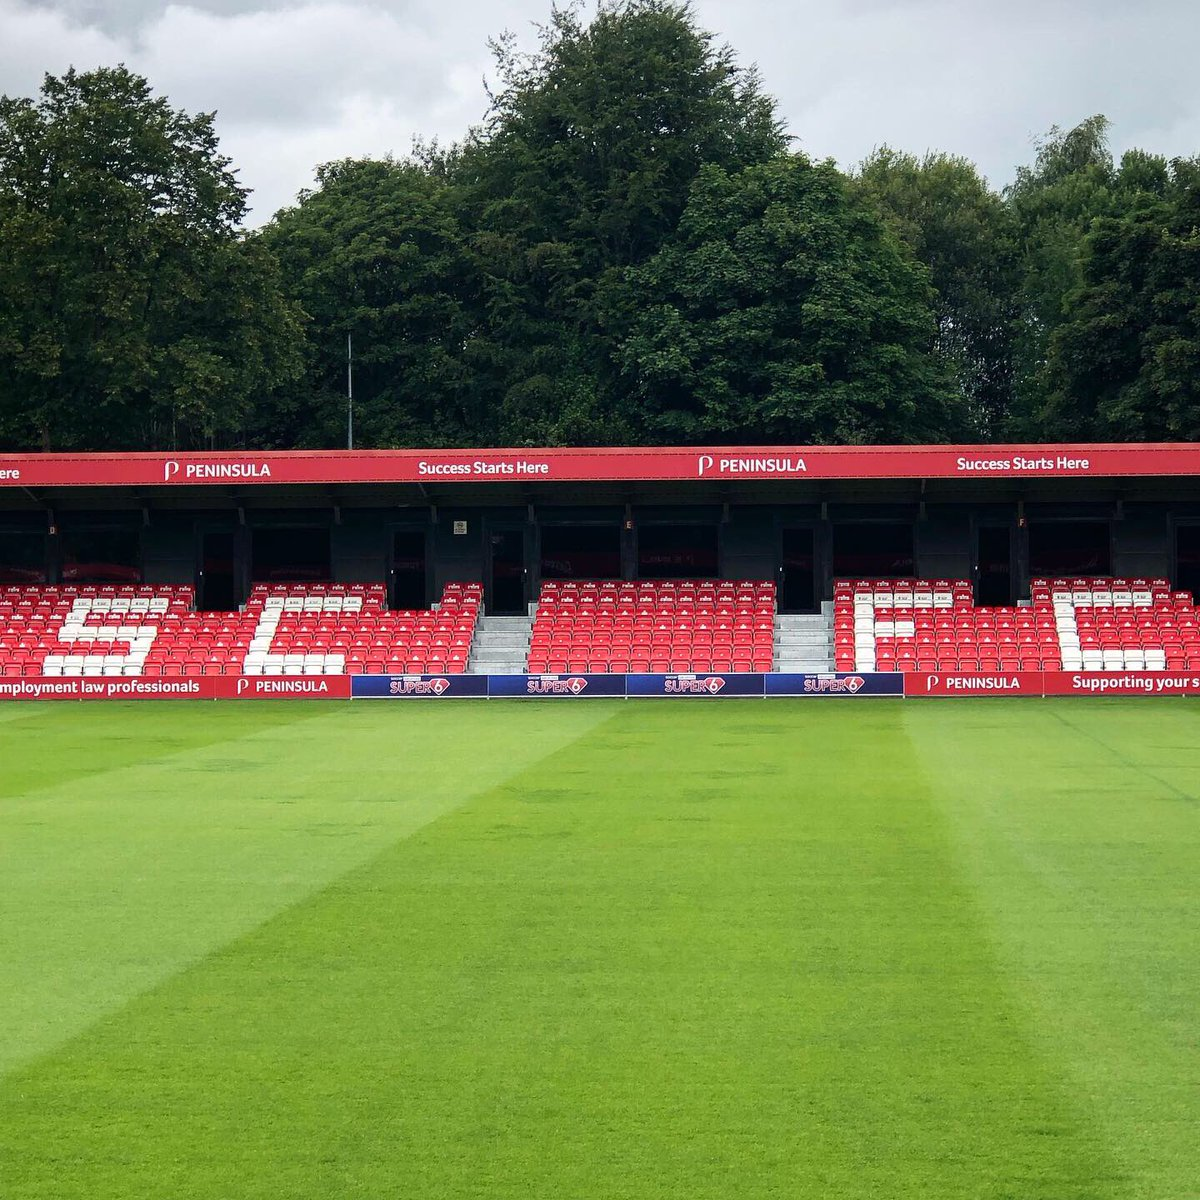 The start of the #football season is fast approaching & we can't wait to get back serving our #craftbeer @salfordcityfc in the @kitbaguk #kbfanzone 🍻 The ground is looking mighty fine guys ! ⚽️ See you on 3rd Aug v  @stevenagefcofficial 🥅 #salford #community #supportlocal https://t.co/y9sgMyY1Rz